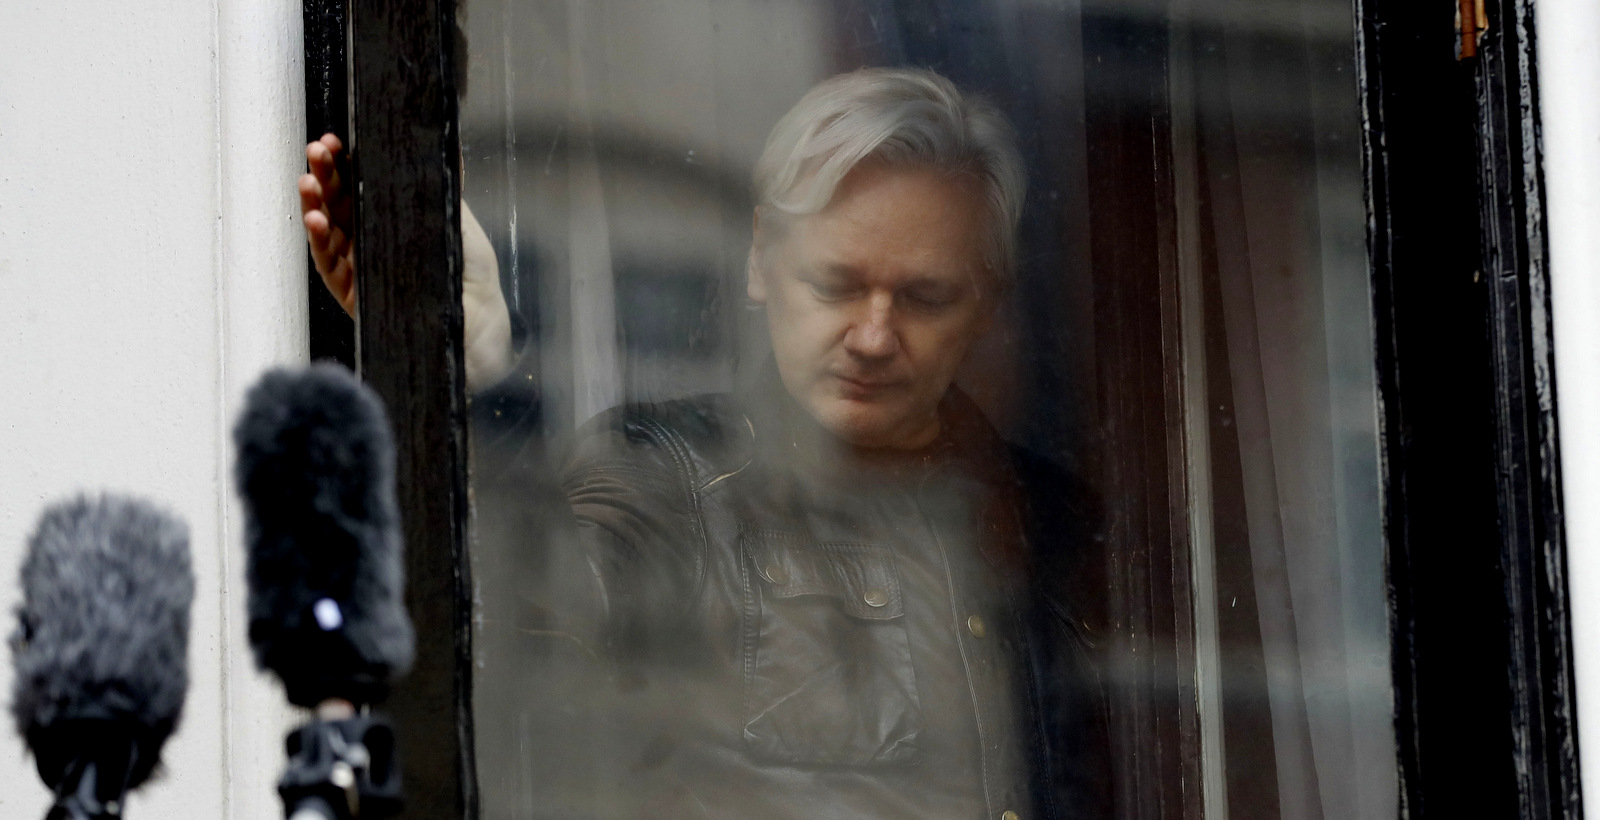 WikiLeaks founder Julian Assange leaves after greeting supporters outside the Ecuadorian embassy in London, May 19, 2017 (AP/Frank Augstein)